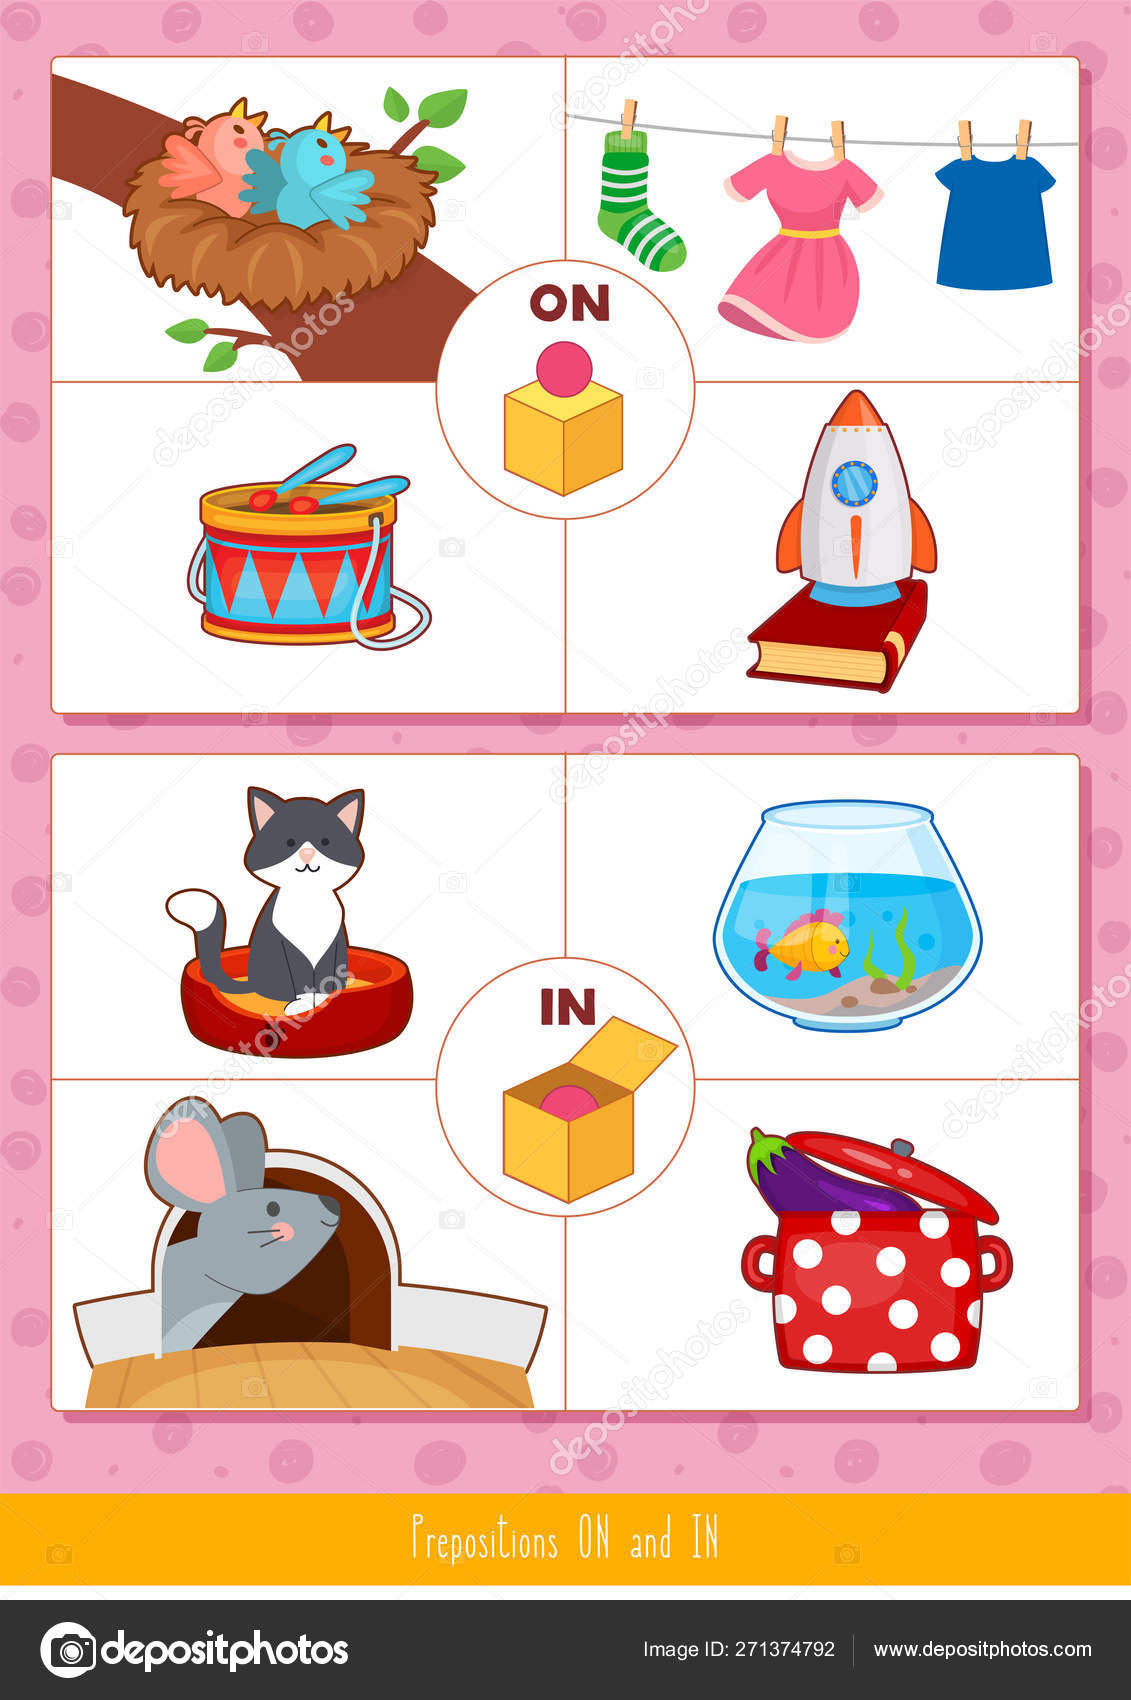 Prepositions On And In